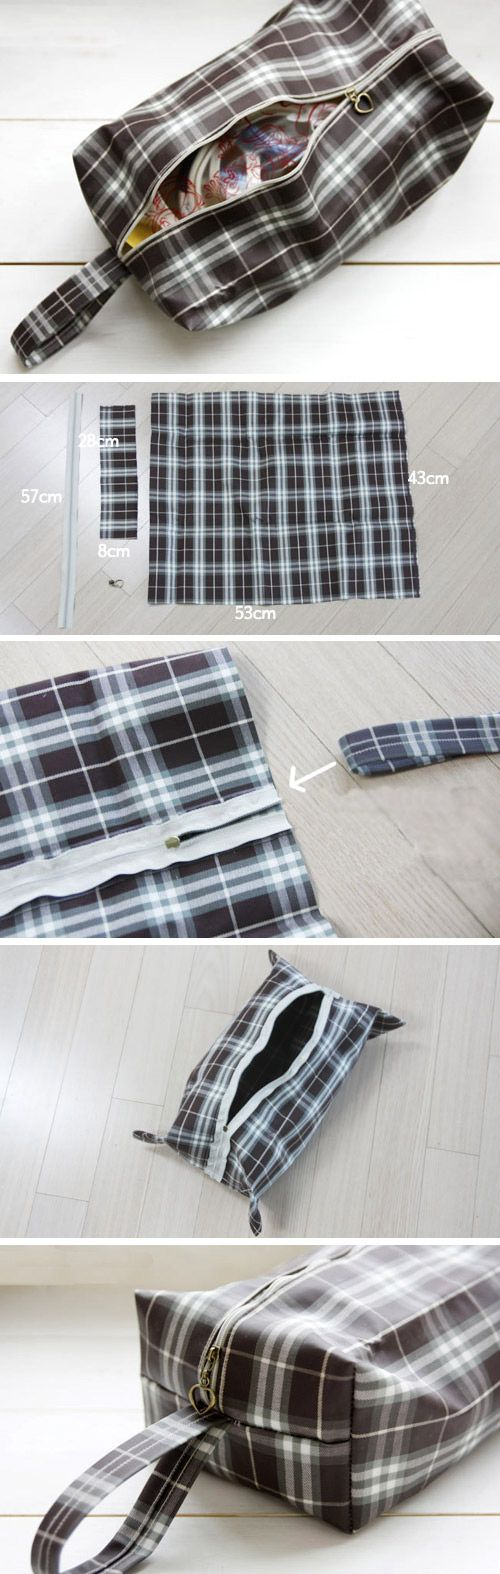 Waterproof Bag - great for traveling but also would be awesome for toting wet swimsuits home. DIY Pattern & Tutorial.   http://www.handmadiya.com/2015/11/waterproof-bag-tutorial.html